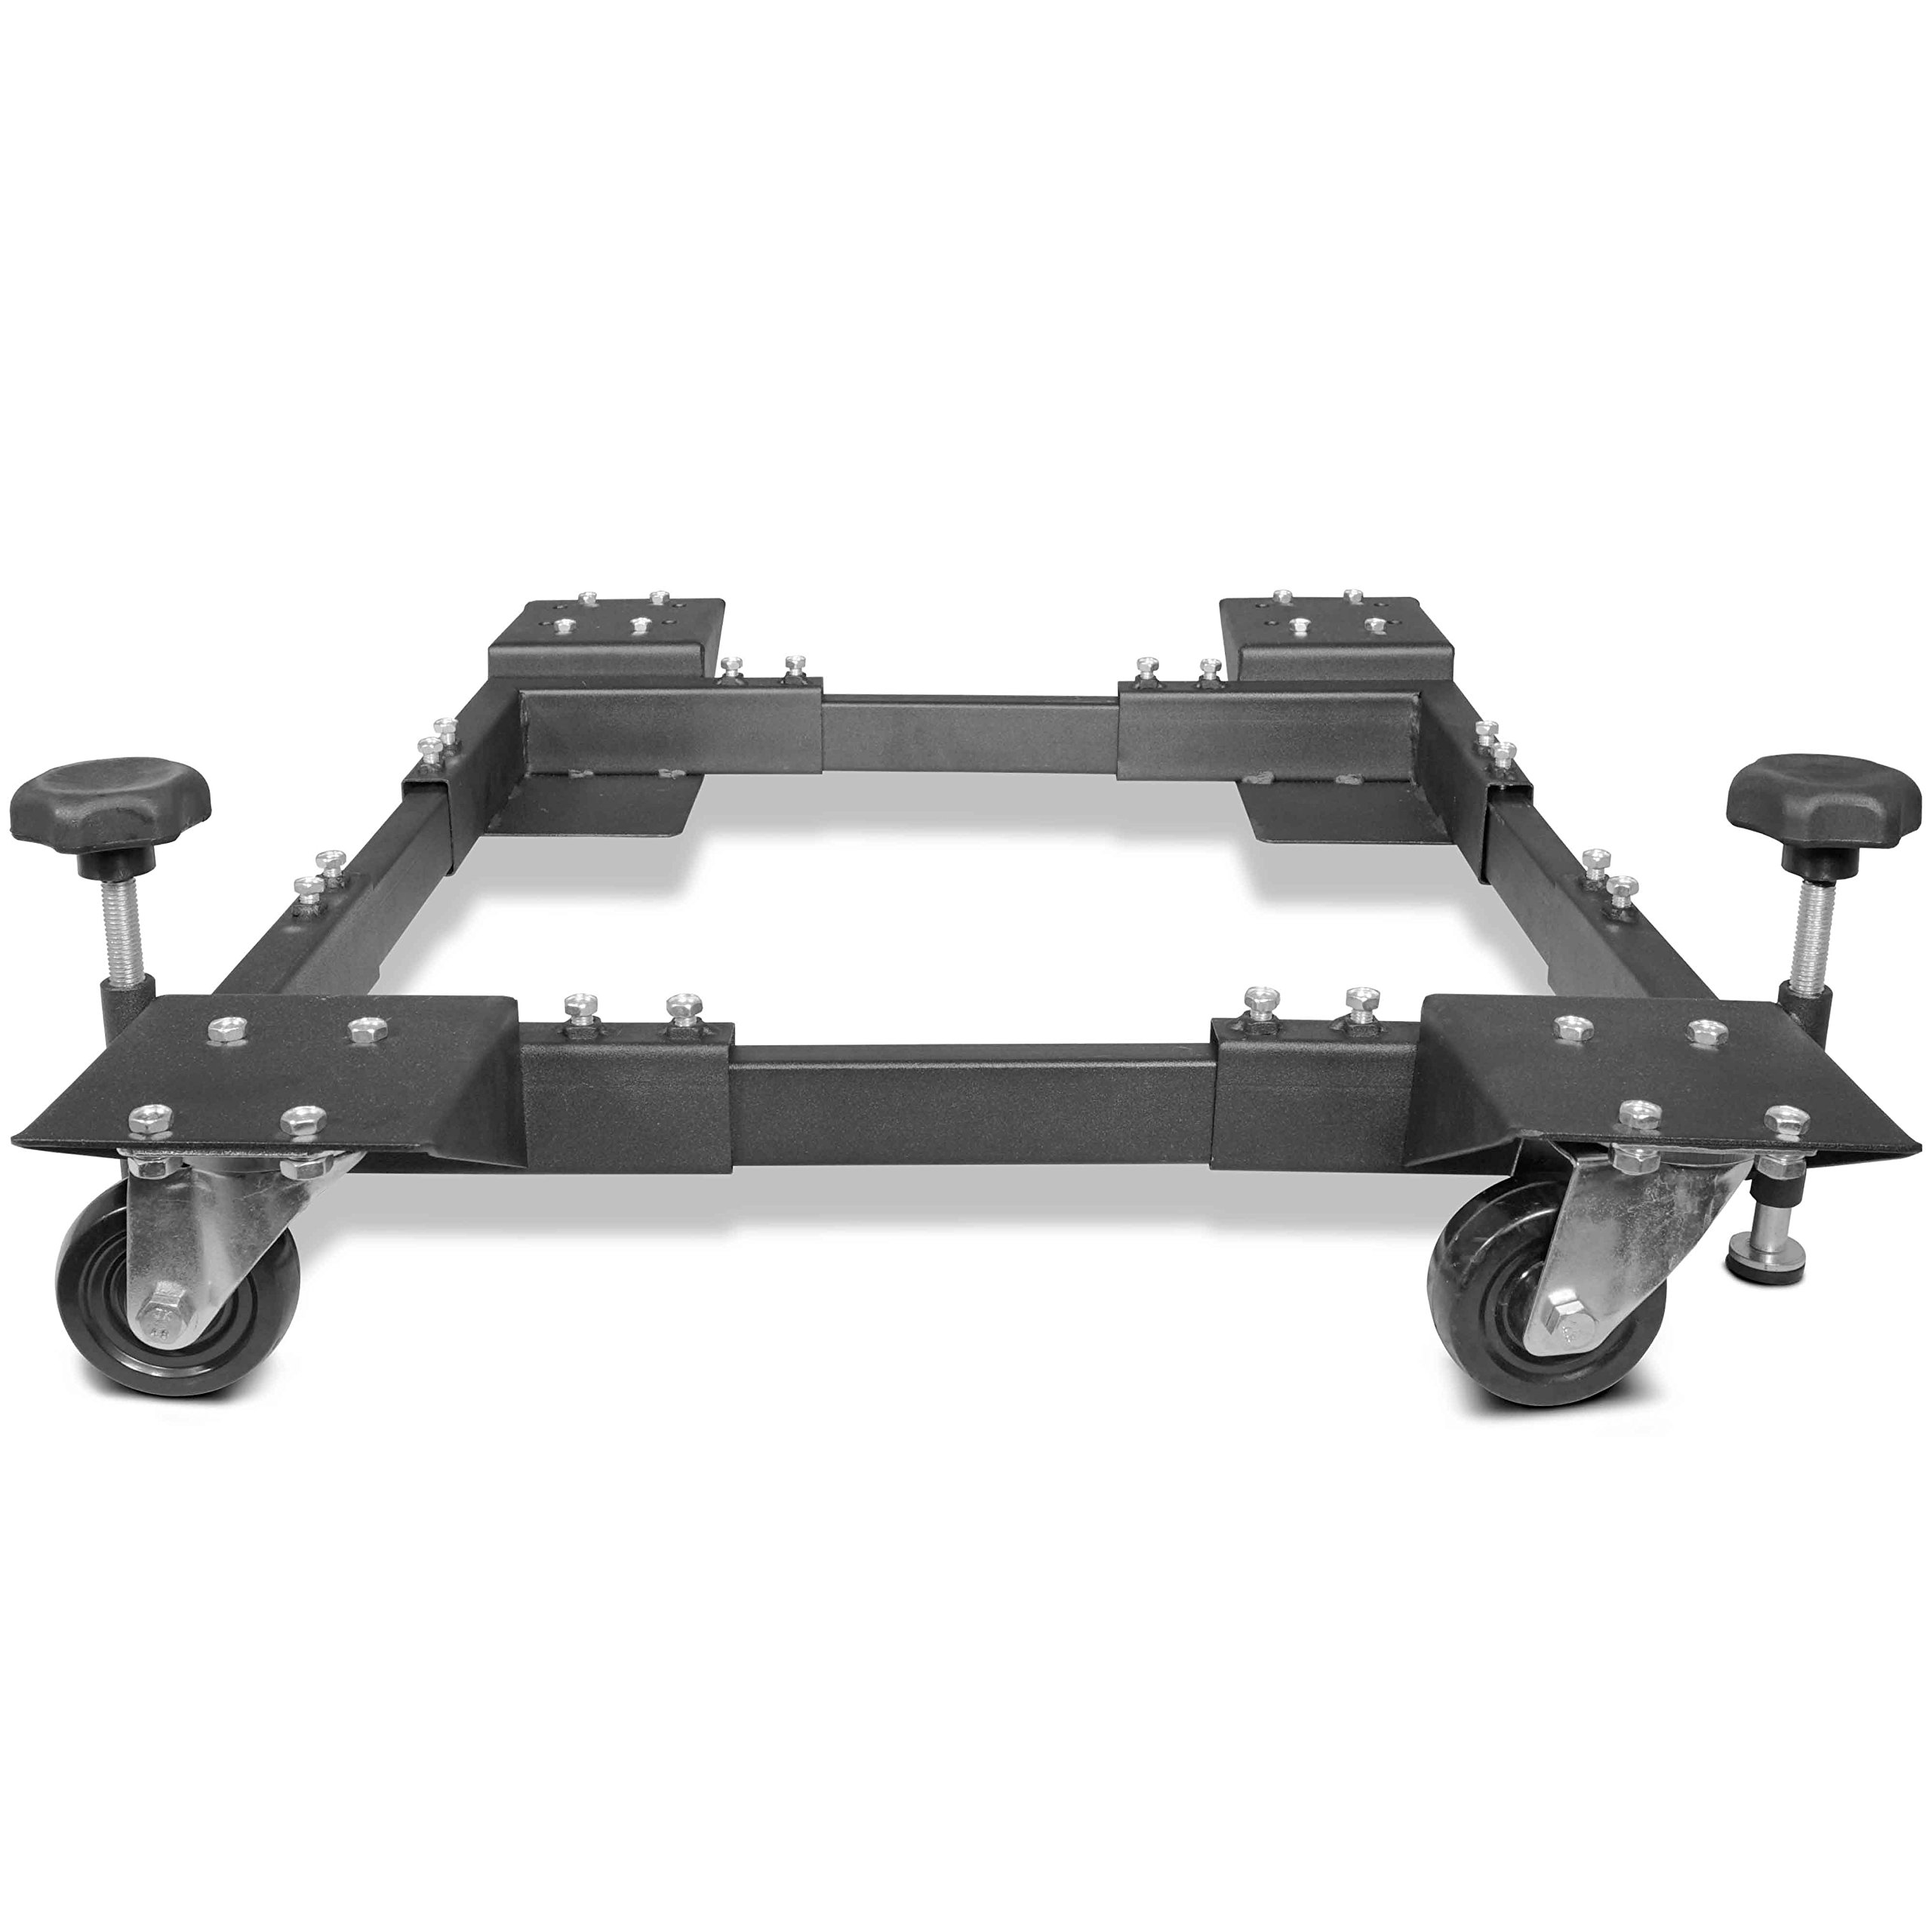 Titan Adjustable Mobile Base Dolly 600 lb Capacity HD Universal Power Tools - Make Your Workshop Portable & Easy To Use by Titan Attachments (Image #5)